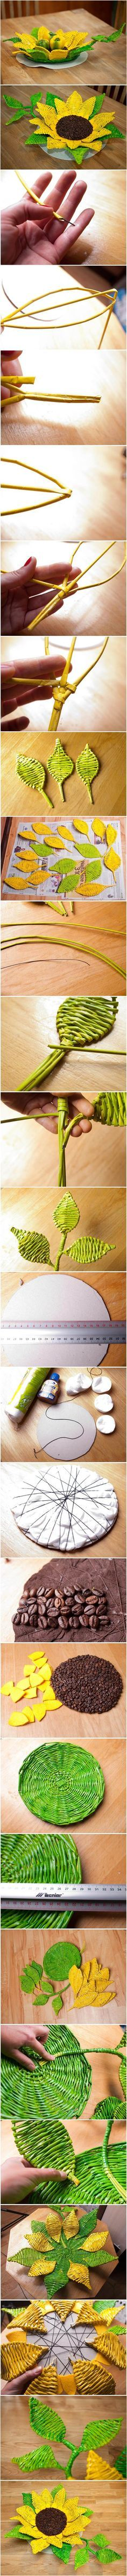 DIY Paper Woven Sunflower Tray | iCreativeIdeas.com Like Us on Facebook == https://www.facebook.com/icreativeideas